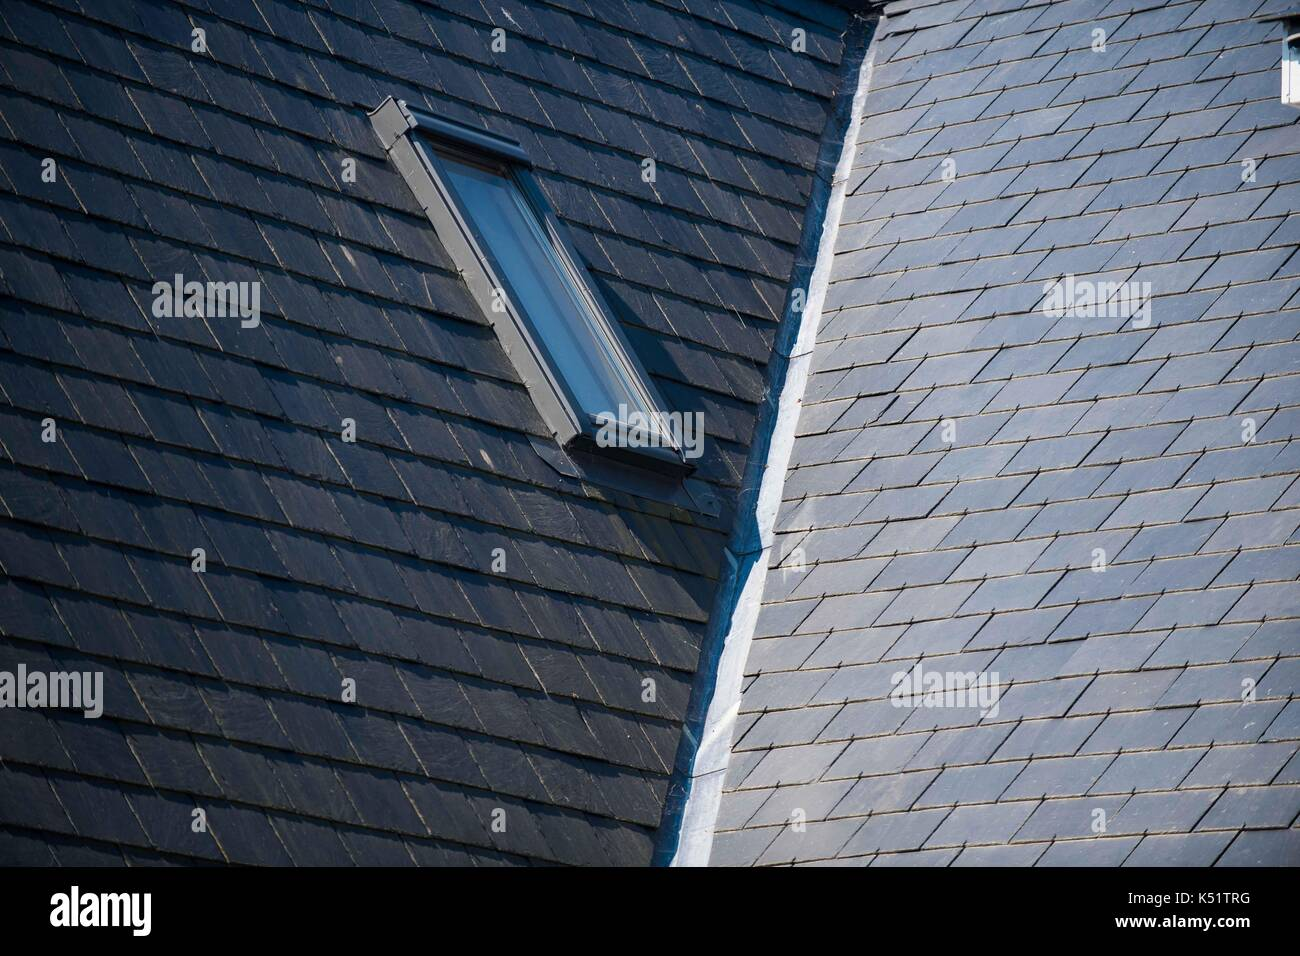 Roof construction slate tiles stock photos roof for Composite roofing tiles